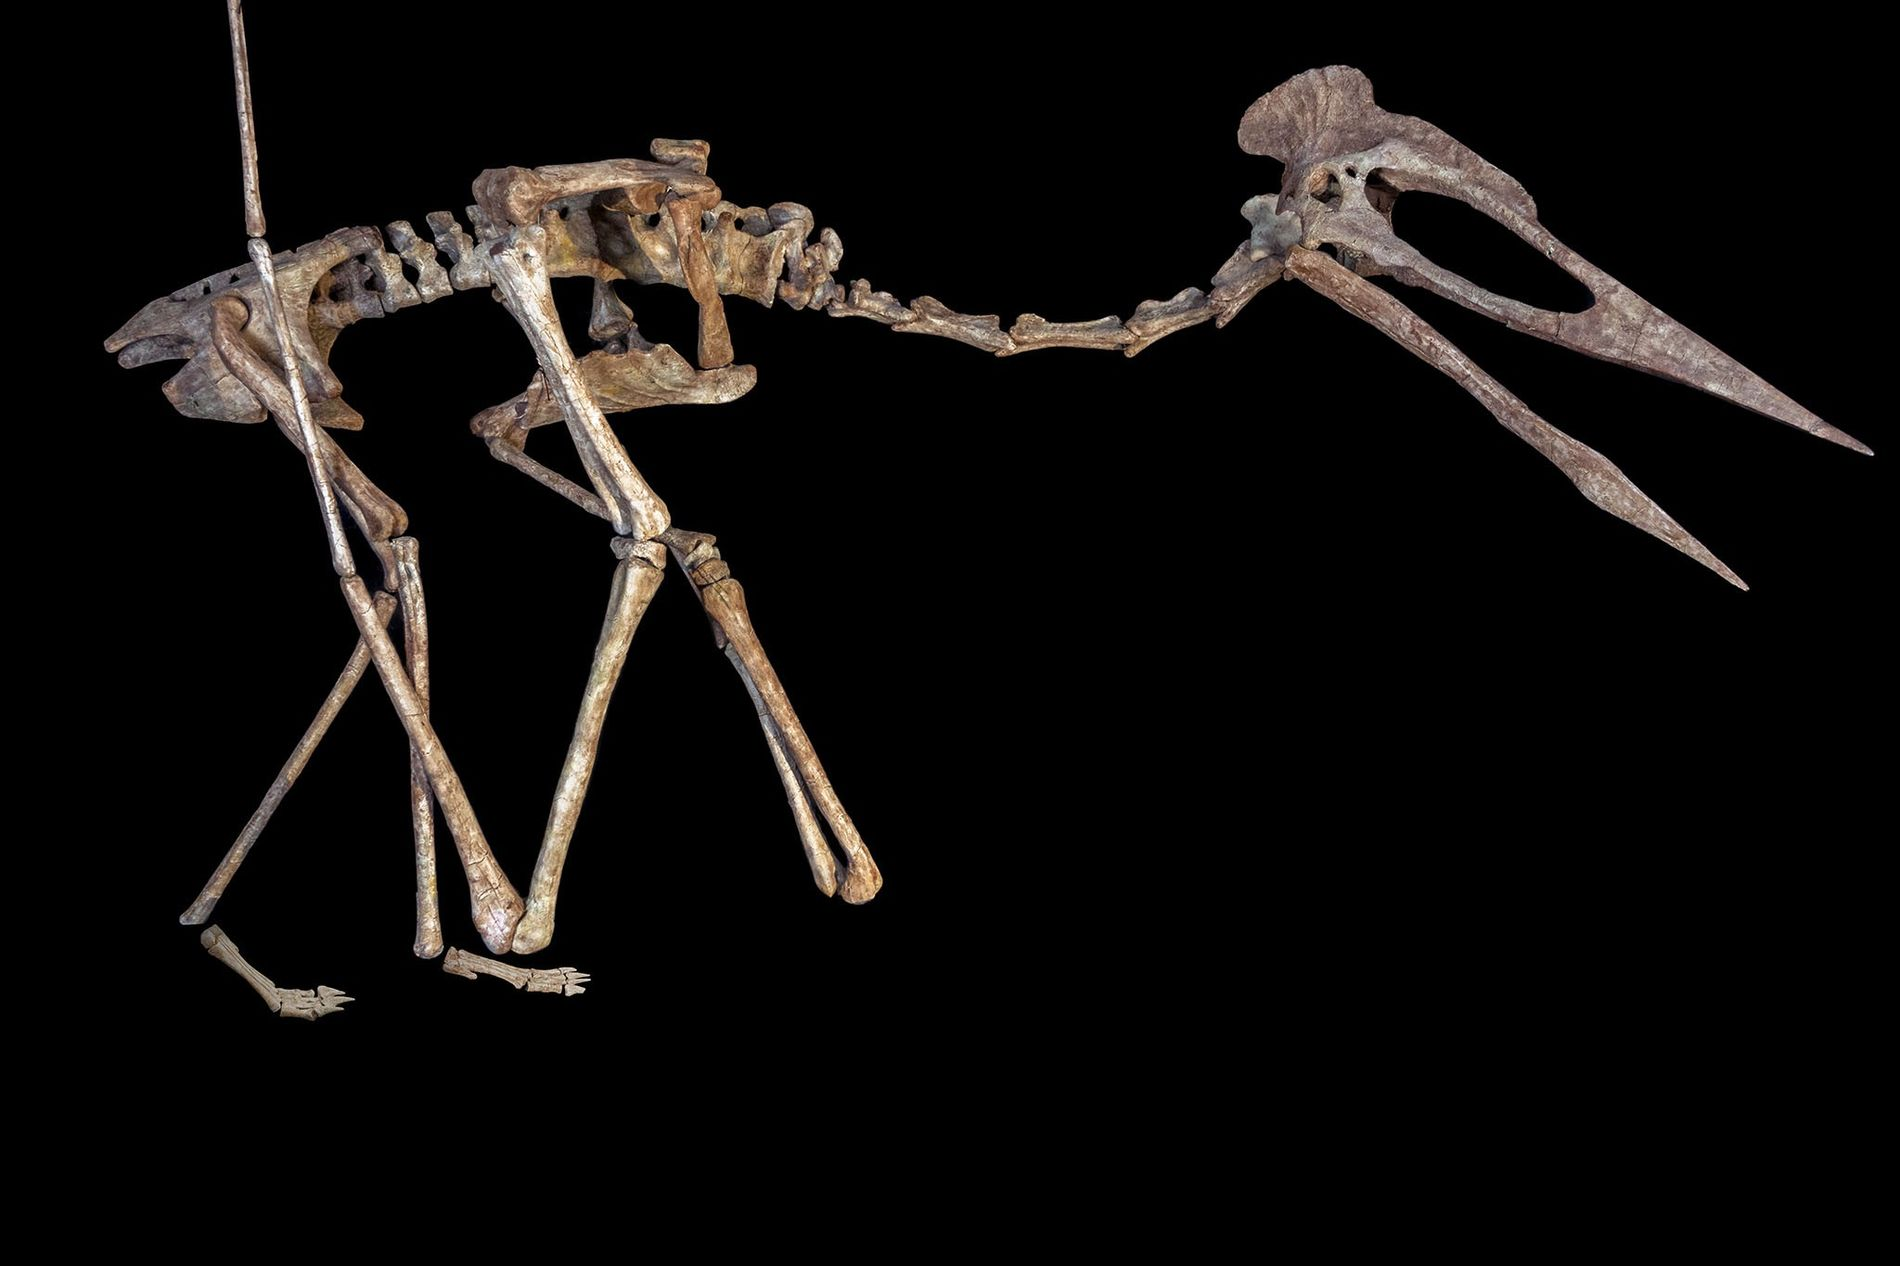 A skeletal reconstruction of the flying reptile known as Dracula, a giant azhdarchoid pterosaur found in ...